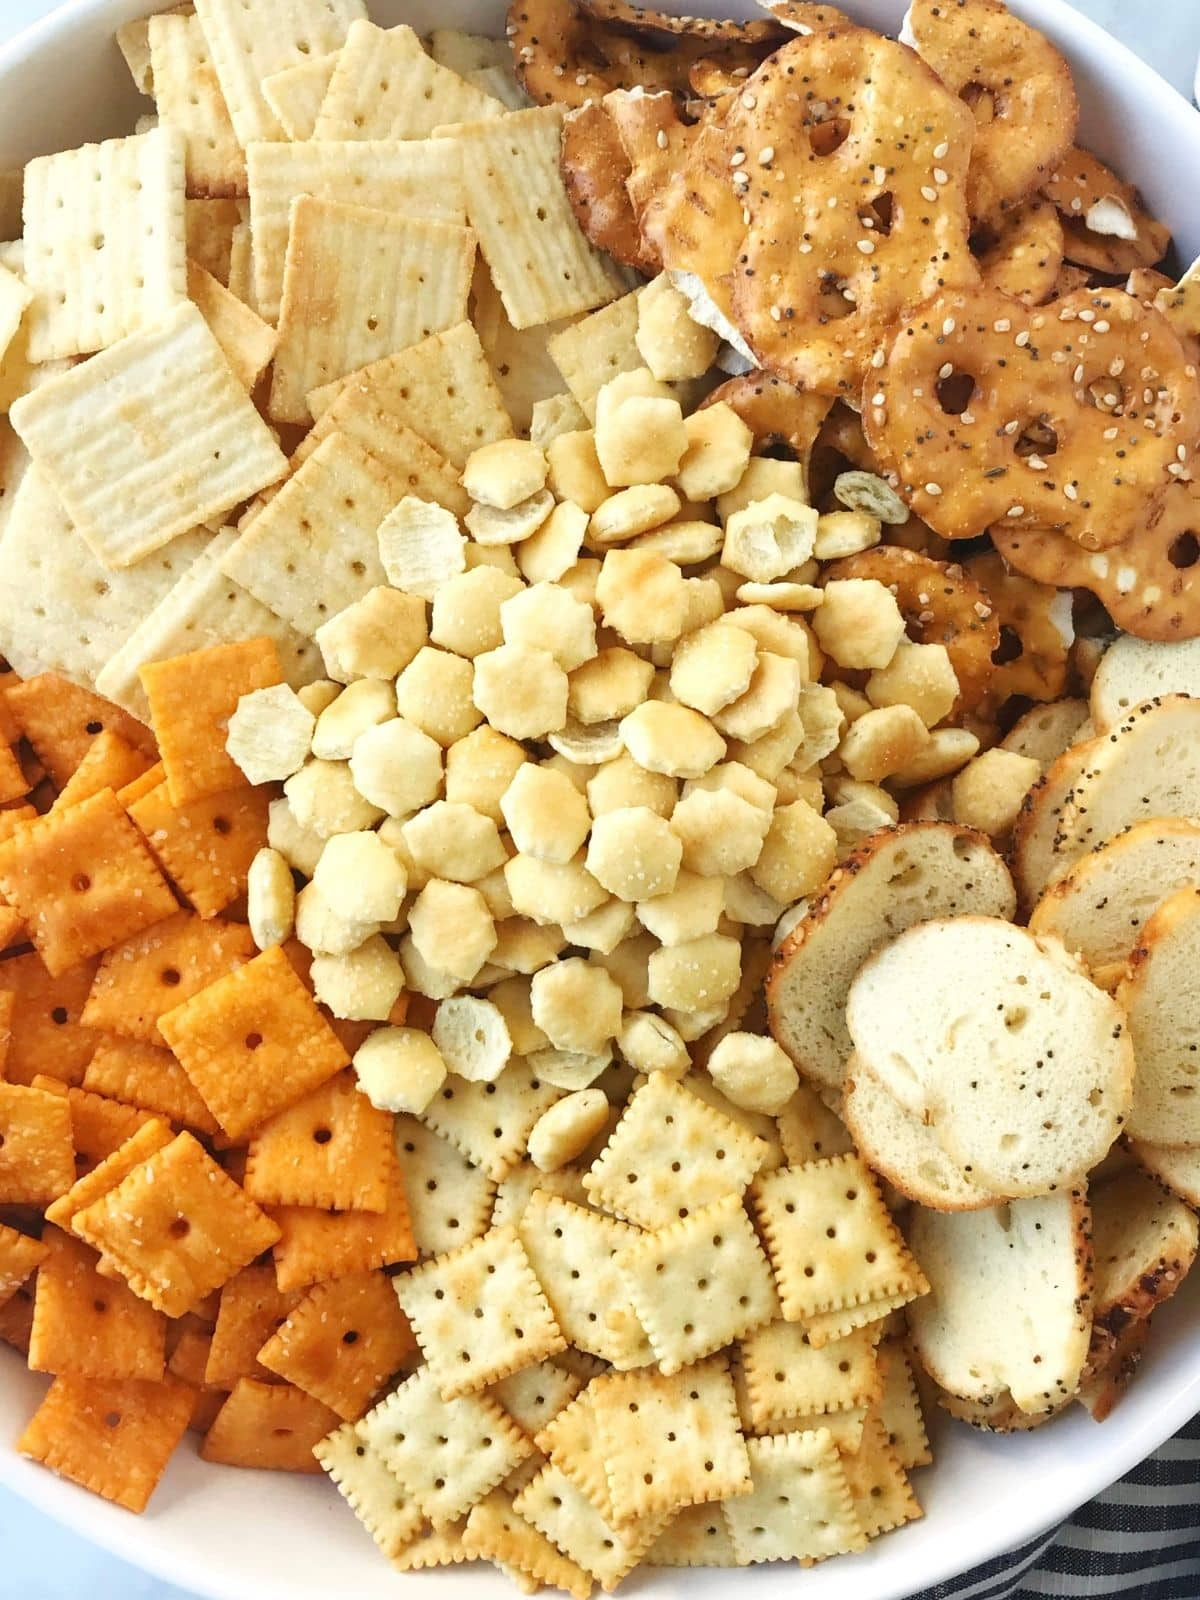 snack mix ingredients grouped together in bowl before mixing